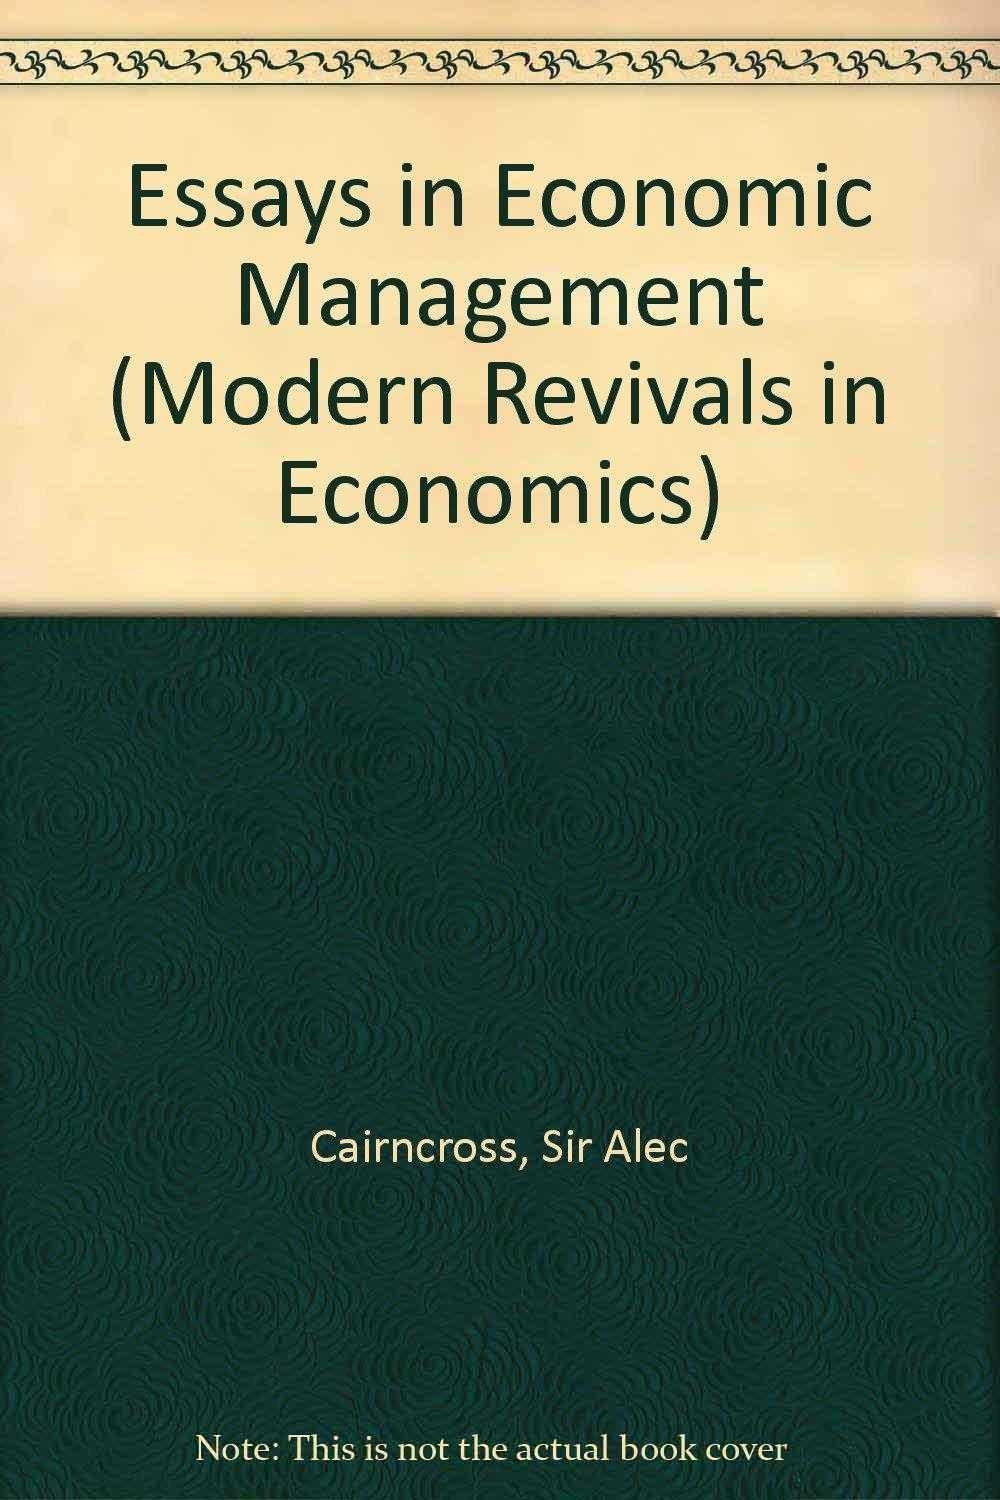 managerial economics 2 essay Managerial economics and strategic analysis this week's paper is required to be approximately 4 -6 pages in length, not including the title page and the reference page.